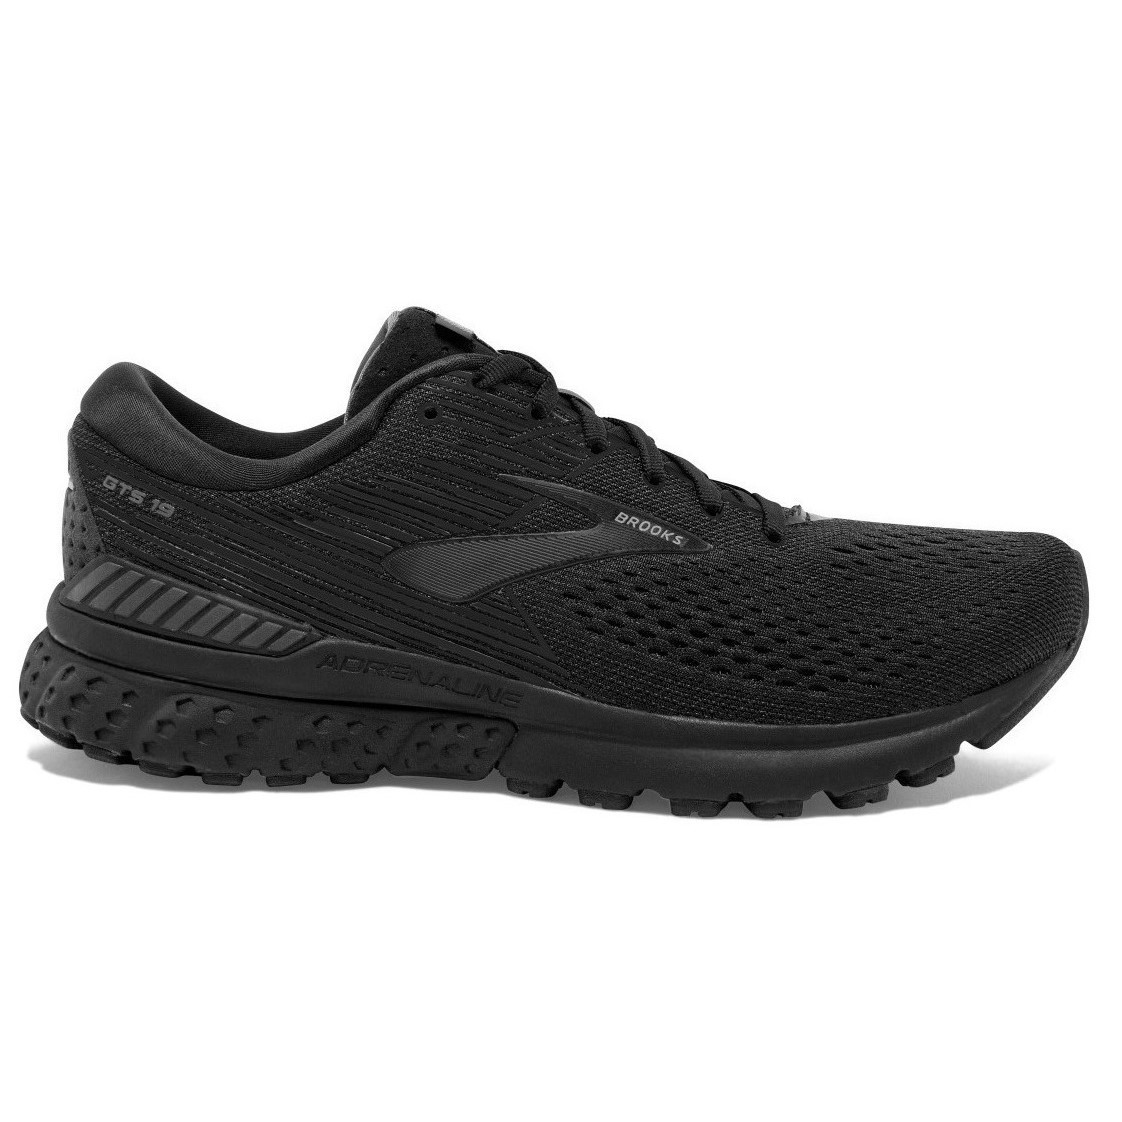 best website 774da 9f36e Brooks Adrenaline GTS 19 - Mens Running Shoes